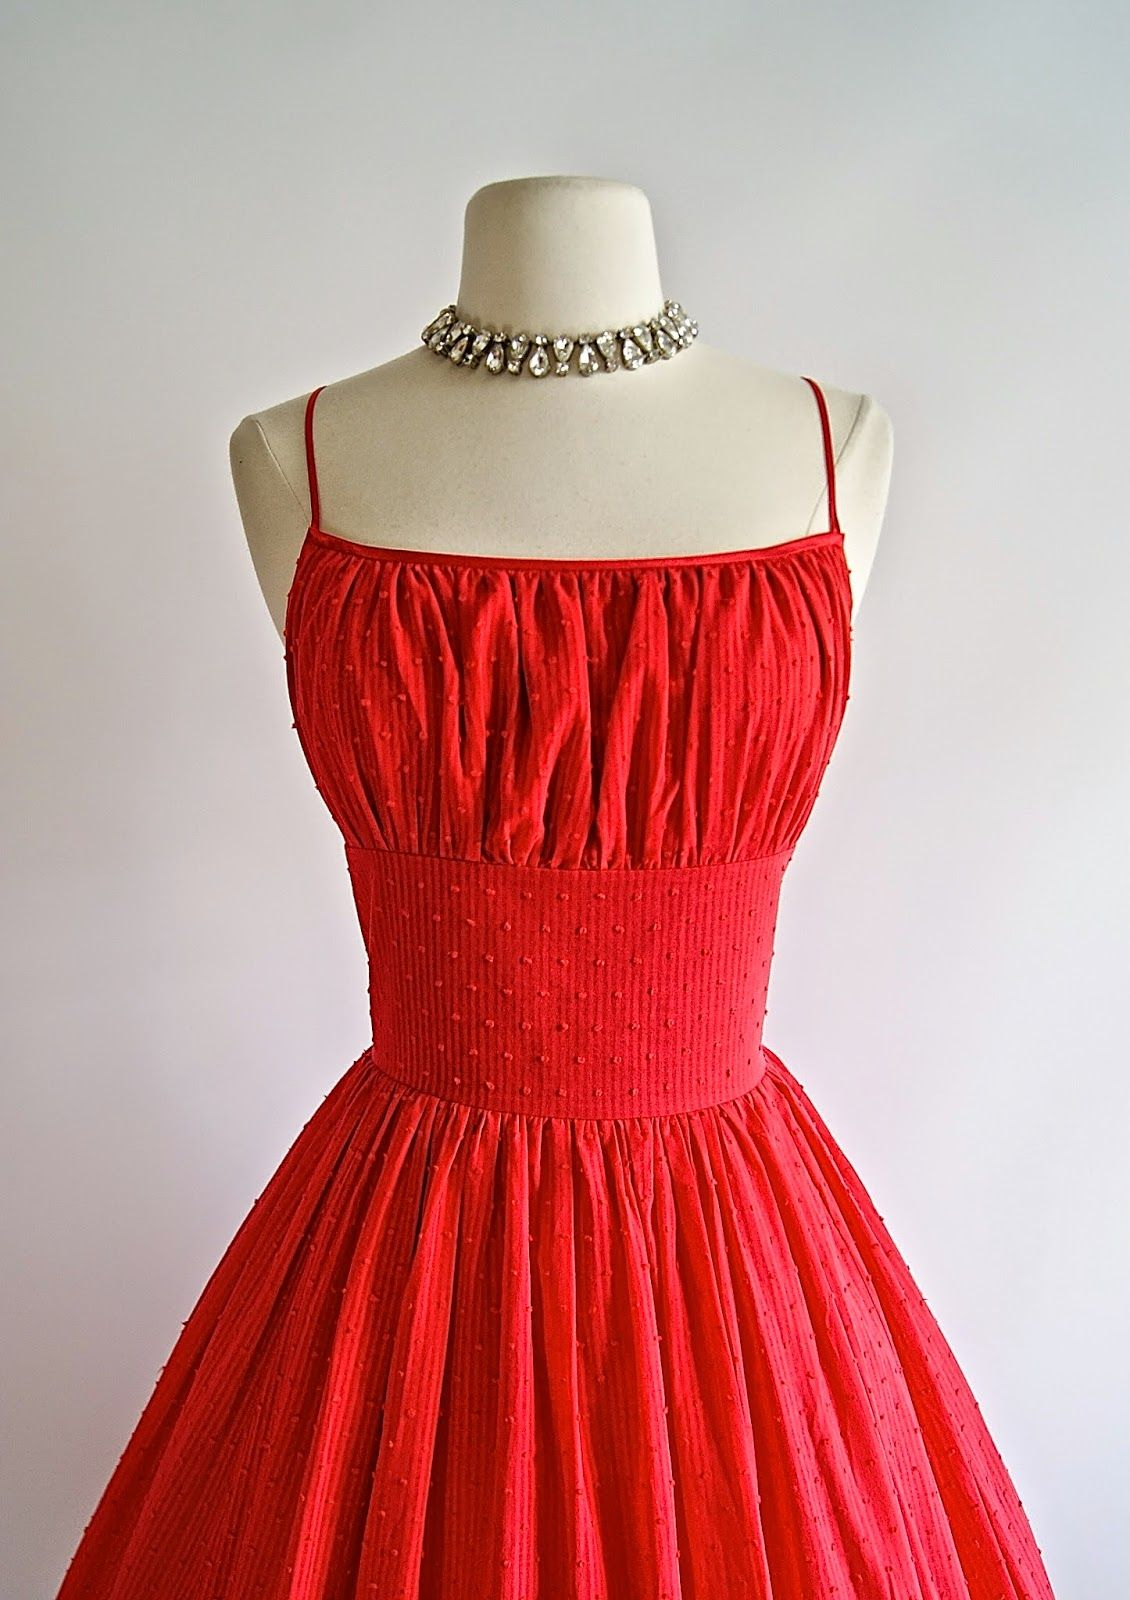 edd6f9a766 Vintage dress ~ Xtabay Vintage Clothing Boutique - Portland, Oregon: Shop  Update!